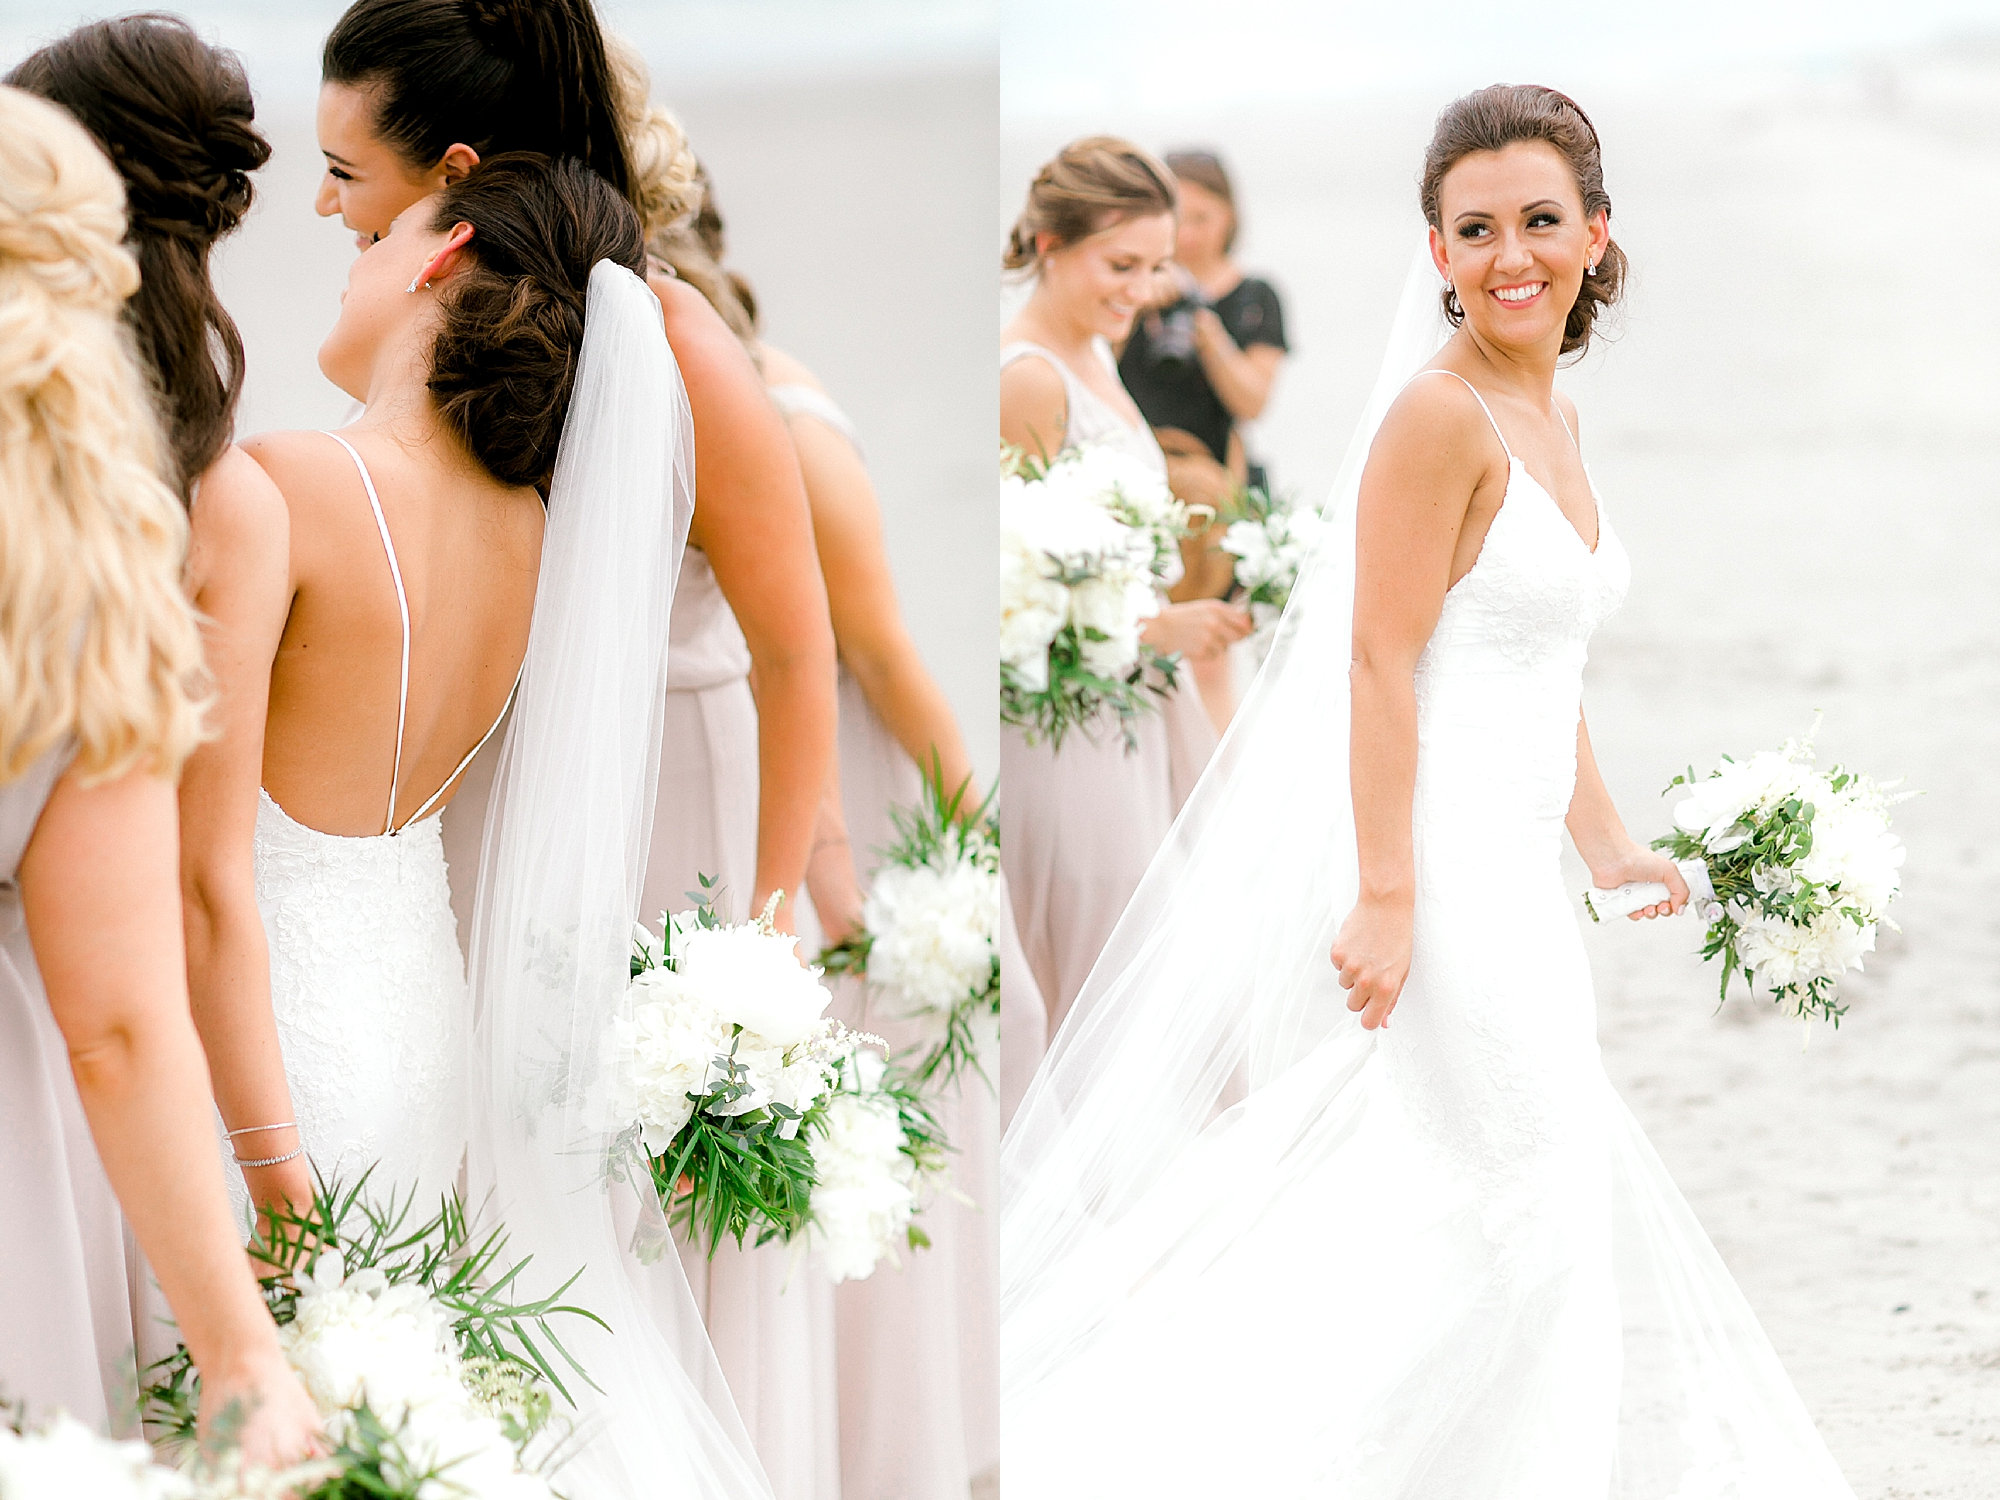 Candid and Stylish South Jersey Wedding Photography by Magdalena Studios 0034